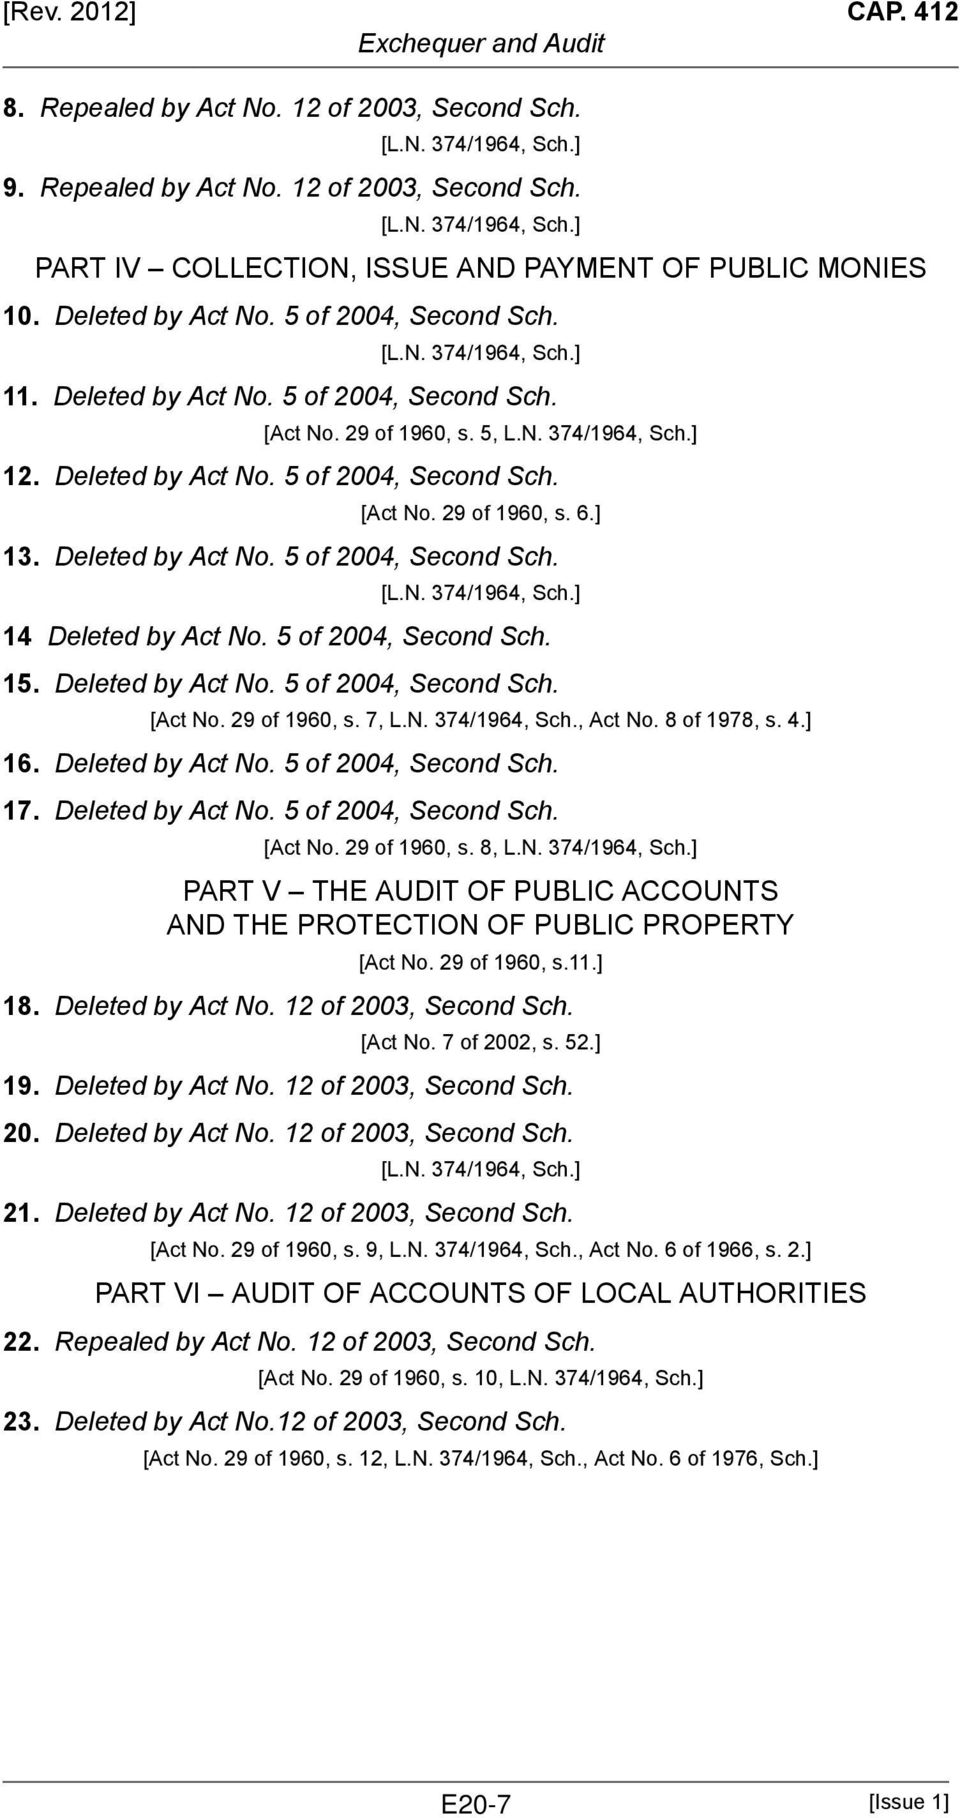 Deleted by Act No. 5 of 2004, Second Sch. 14 Deleted by Act No. 5 of 2004, Second Sch. 15. Deleted by Act No. 5 of 2004, Second Sch. [Act No. 29 of 1960, s. 7, L.N. 374/1964, Sch., Act No.